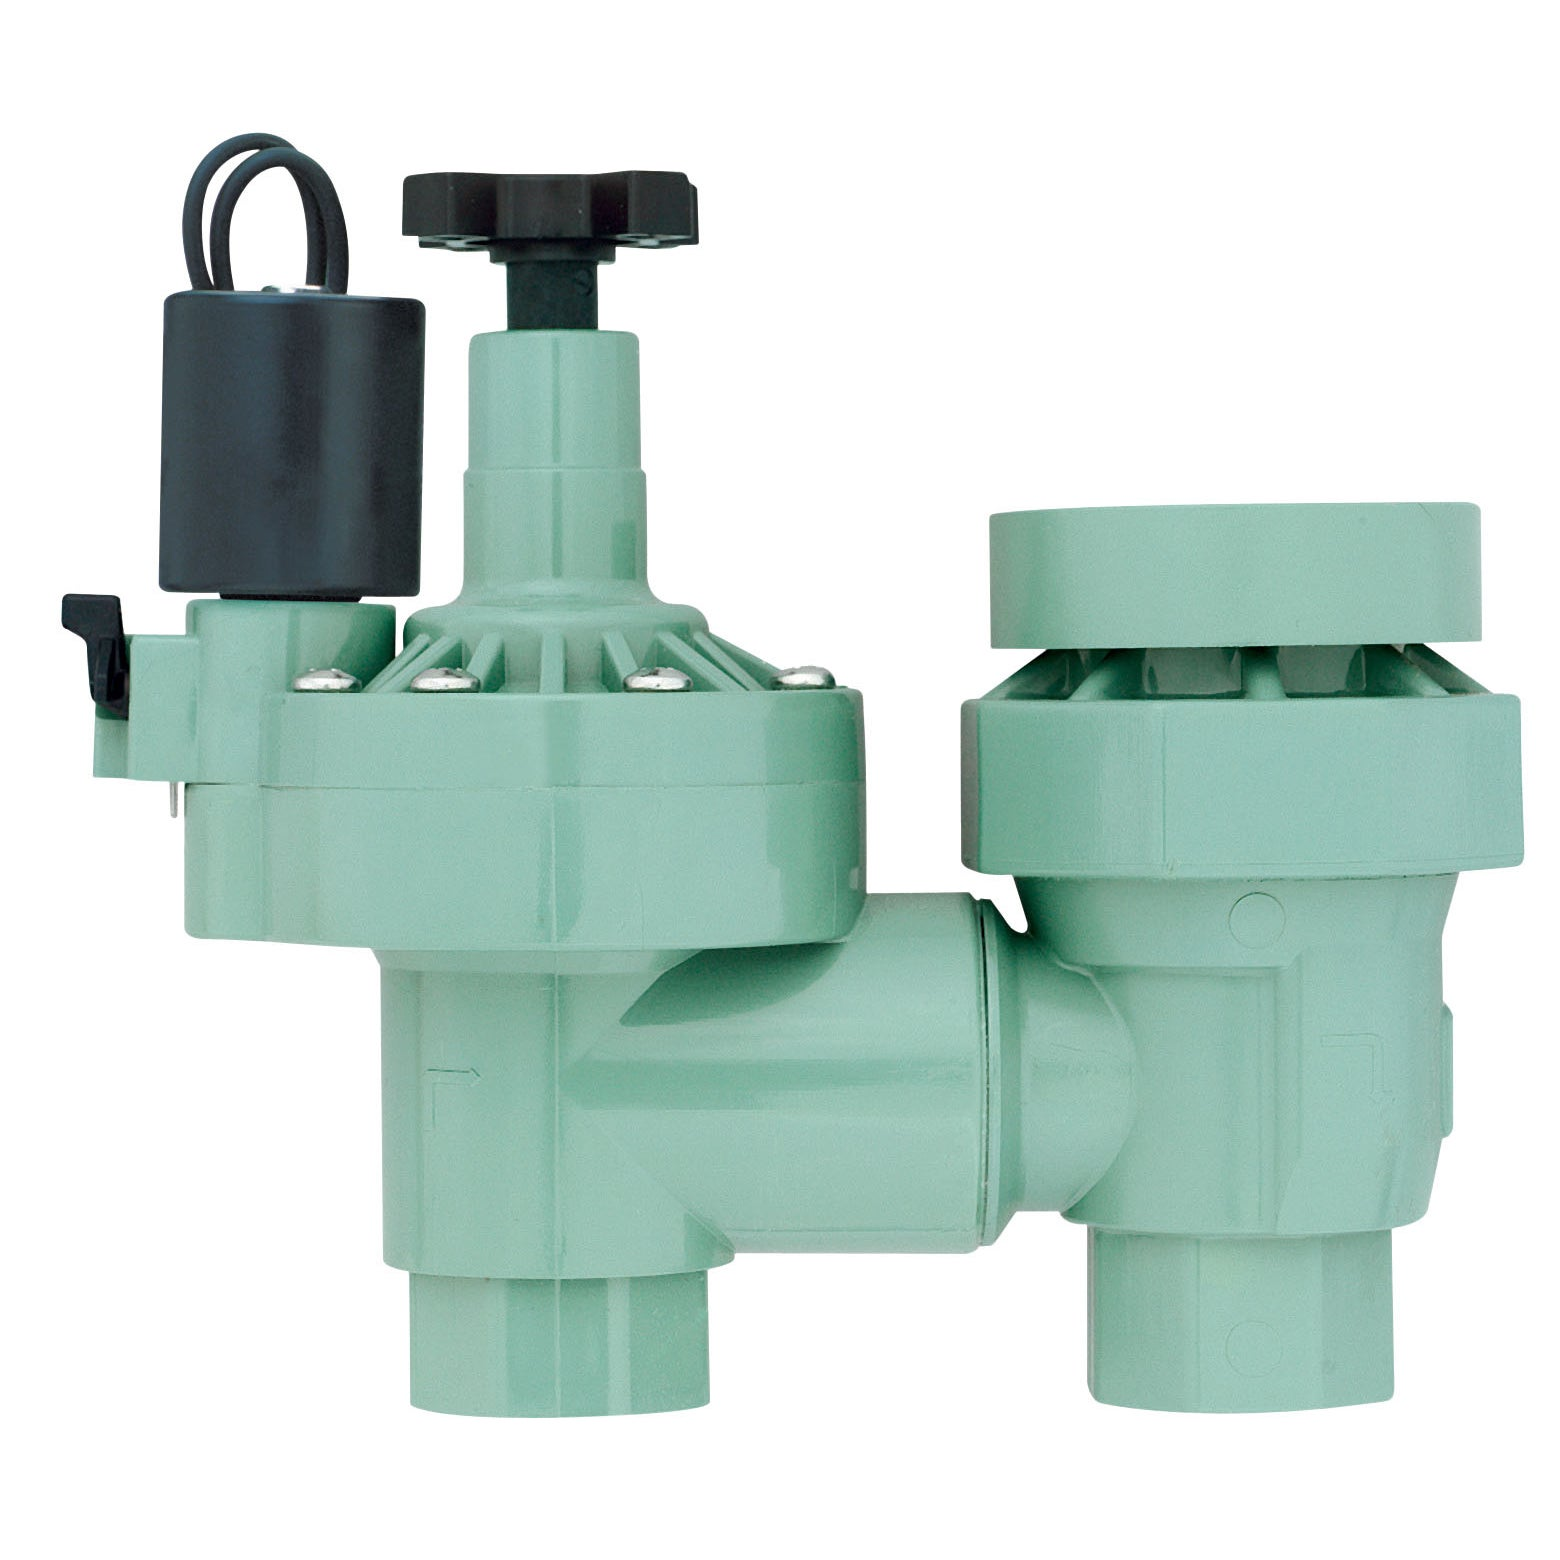 Orbit 57623 3/4-inch Electric Anti-Siphon Valve (Sprinkle...